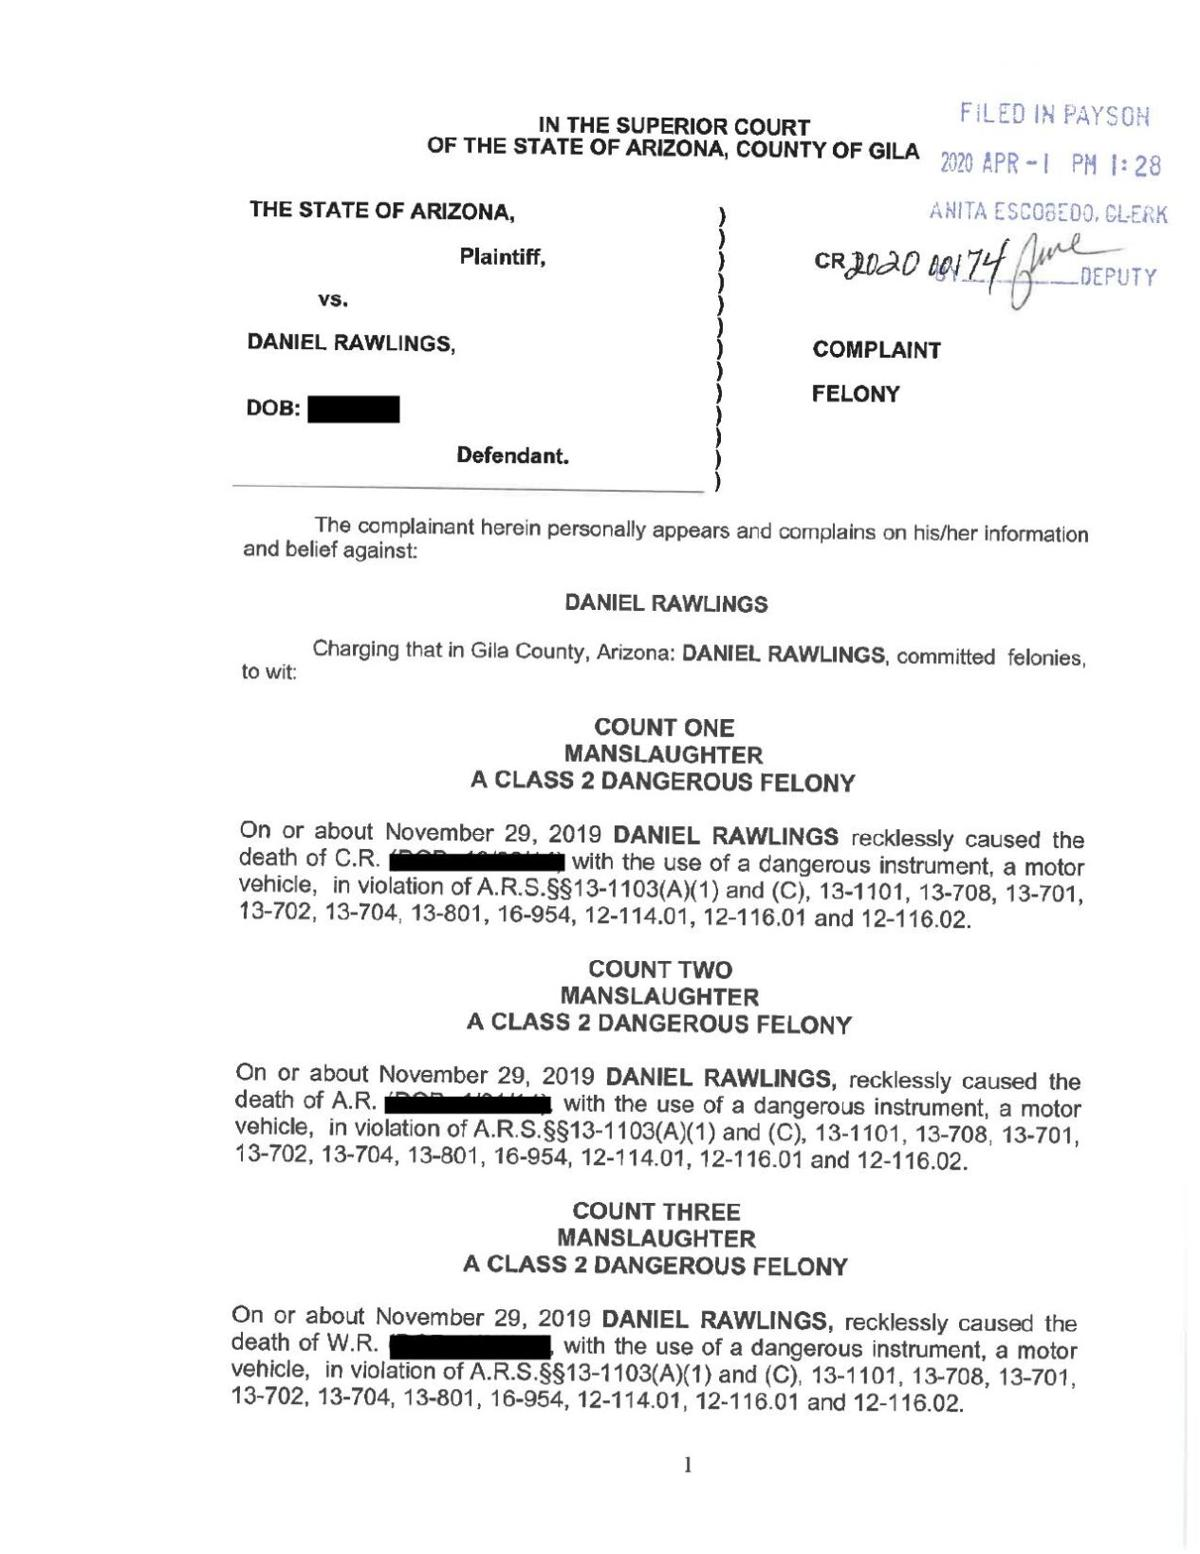 Daniel Rawlings indictment